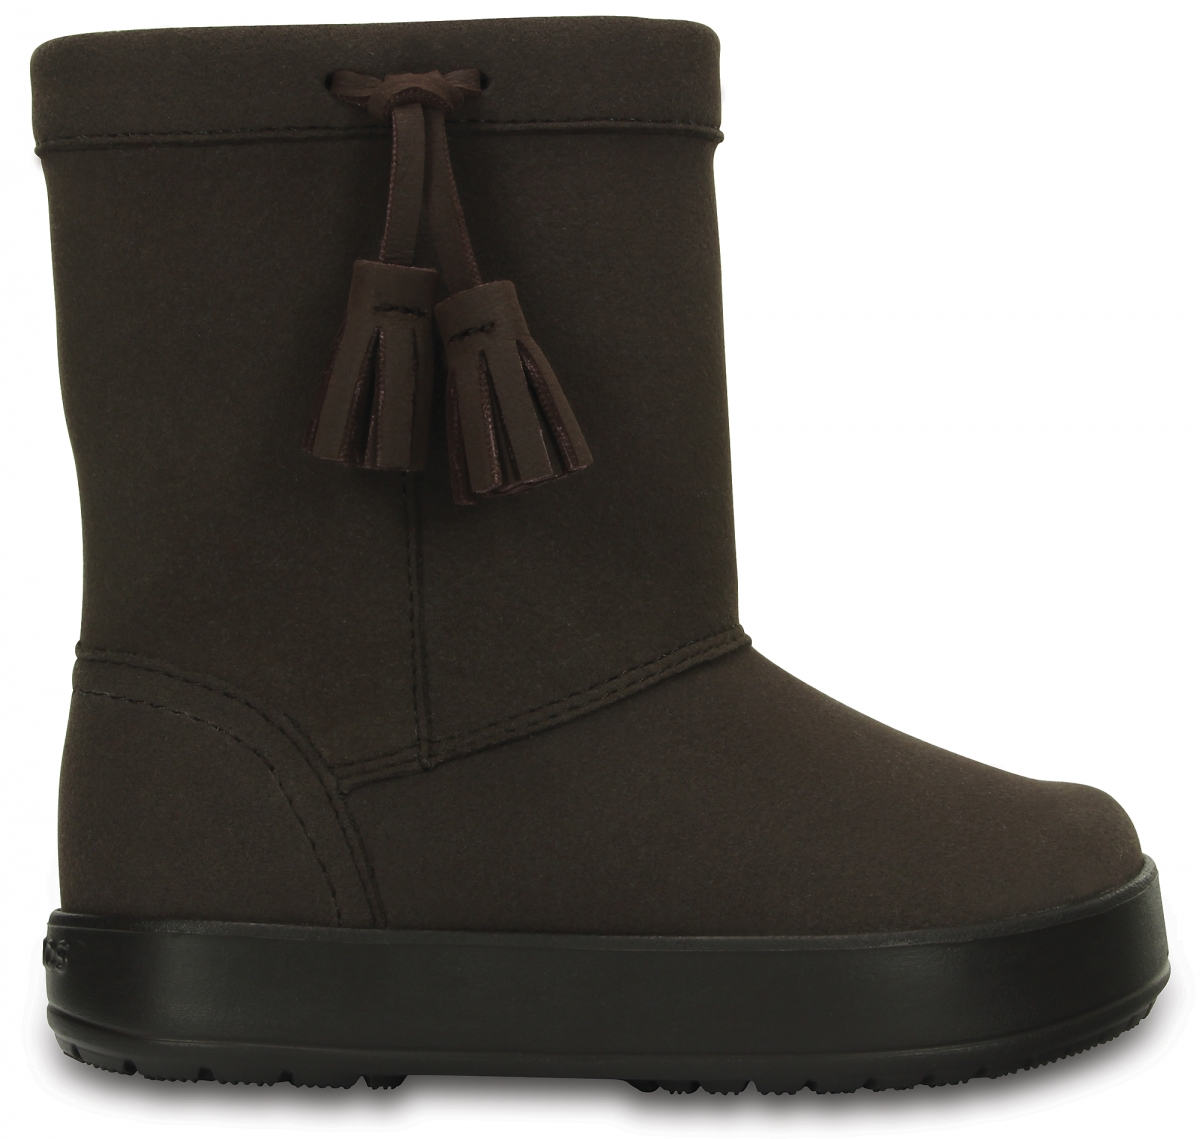 Crocs LodgePoint Boot Kids - Espresso, C10 (27-28)